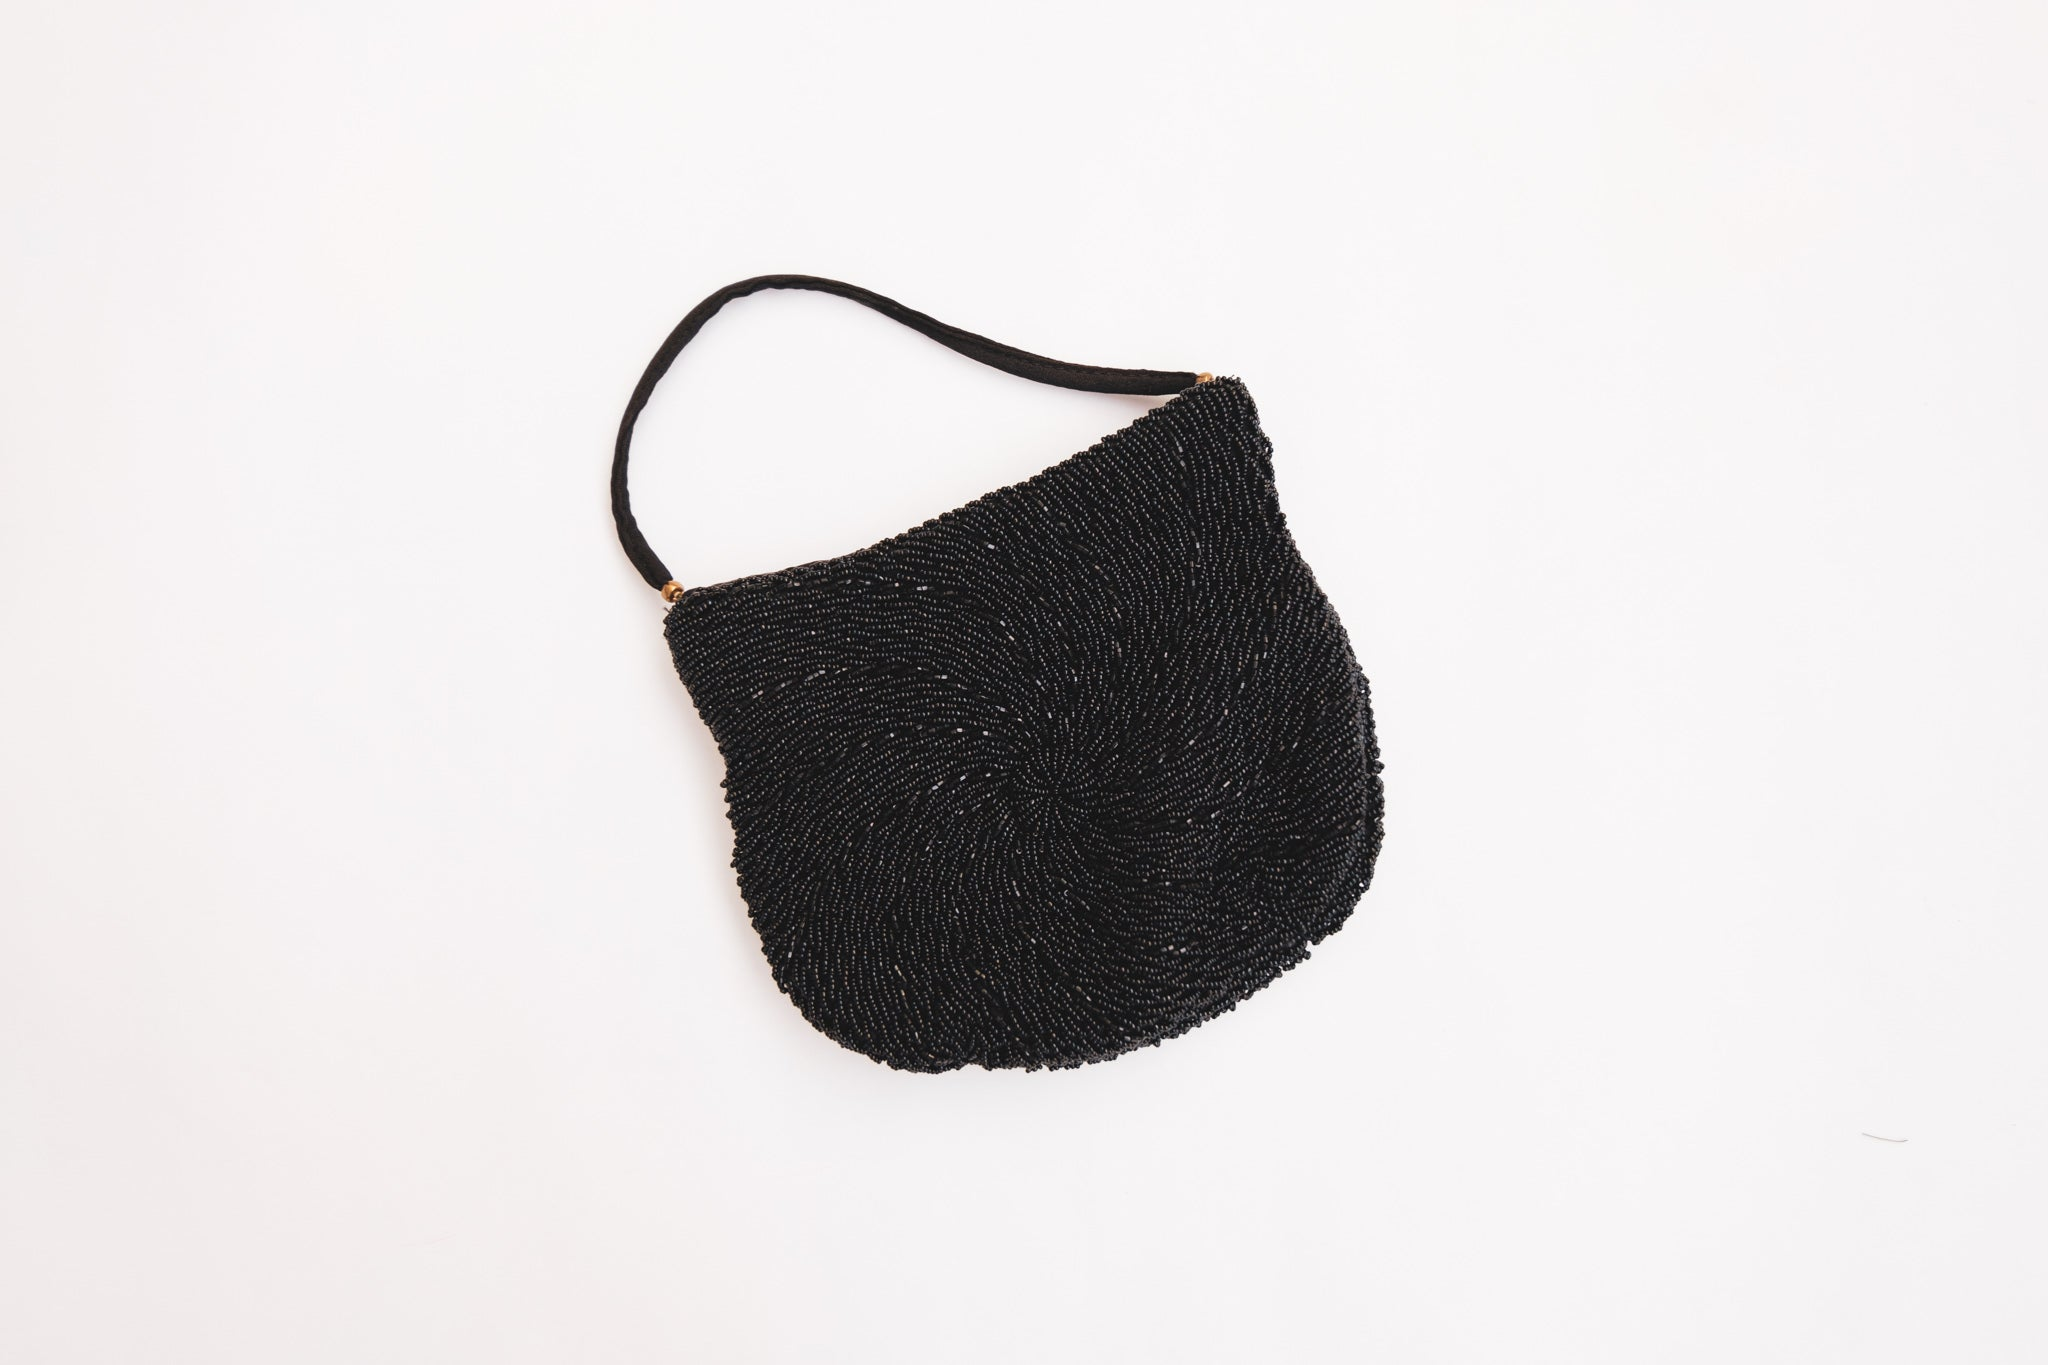 Beaded Black Purse